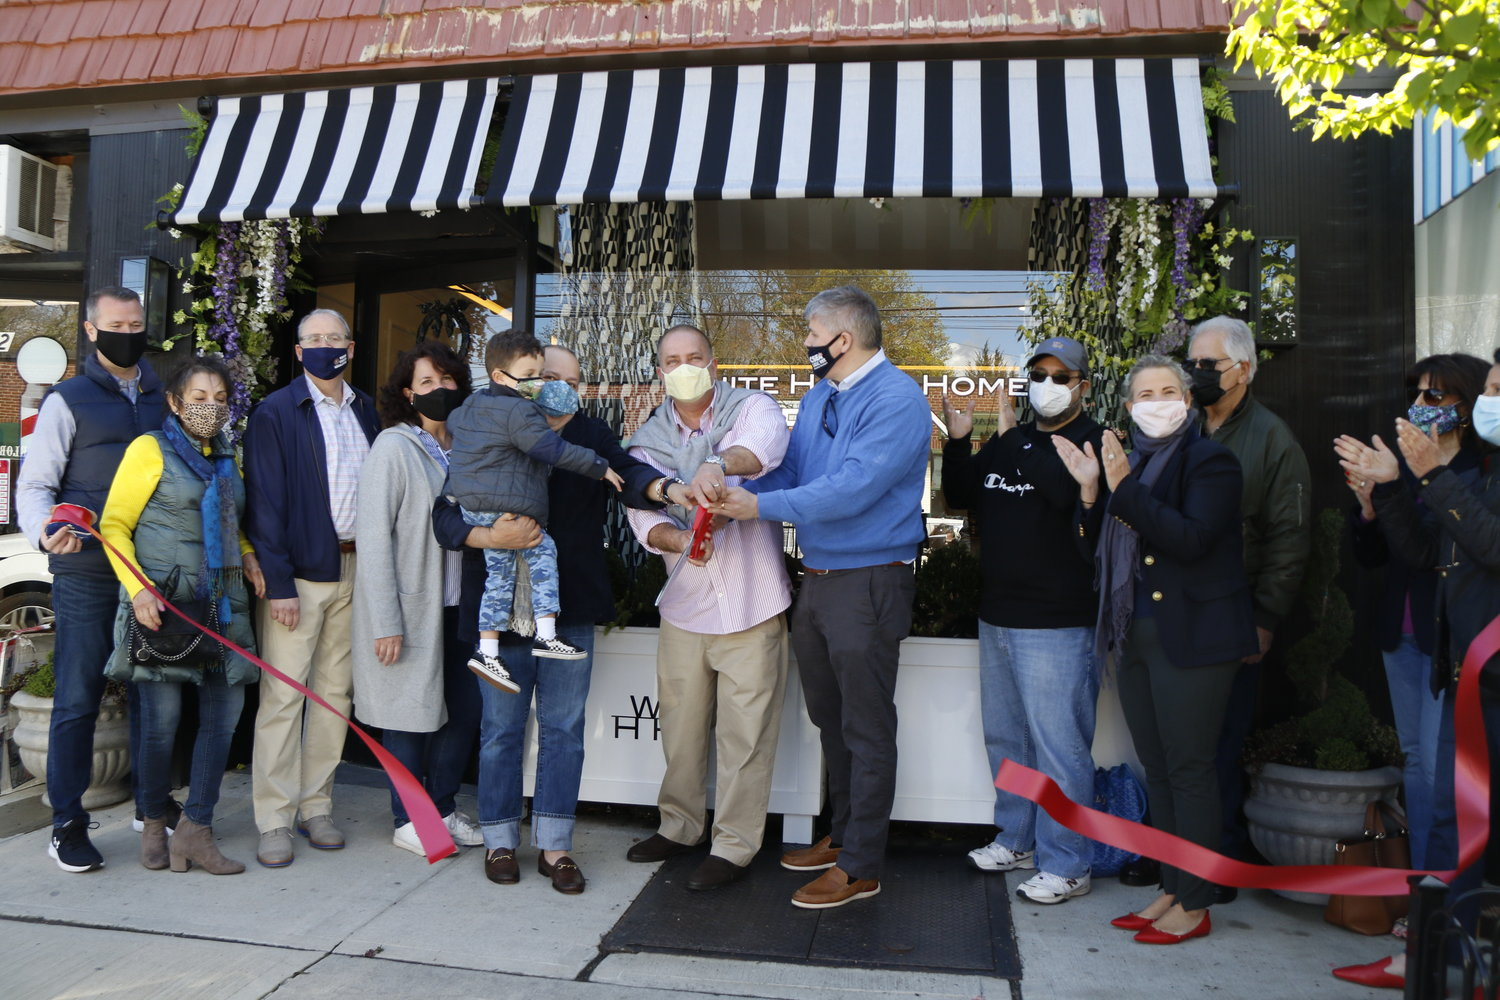 The White House Home in Malverne held a ribbon-cutting ceremony for its second shop, at 288 Hempstead Ave., on April 17.